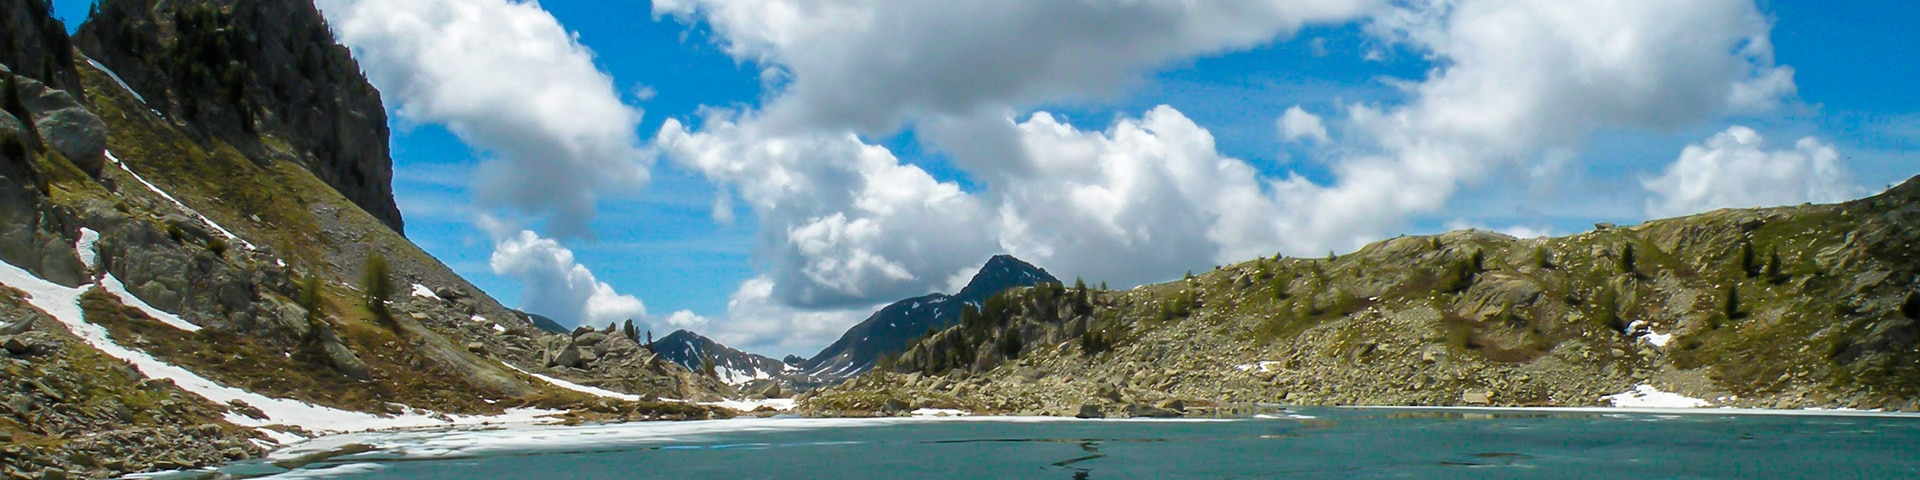 Panorama from the La Lac Nègre hike in Mercantour National Park, France''